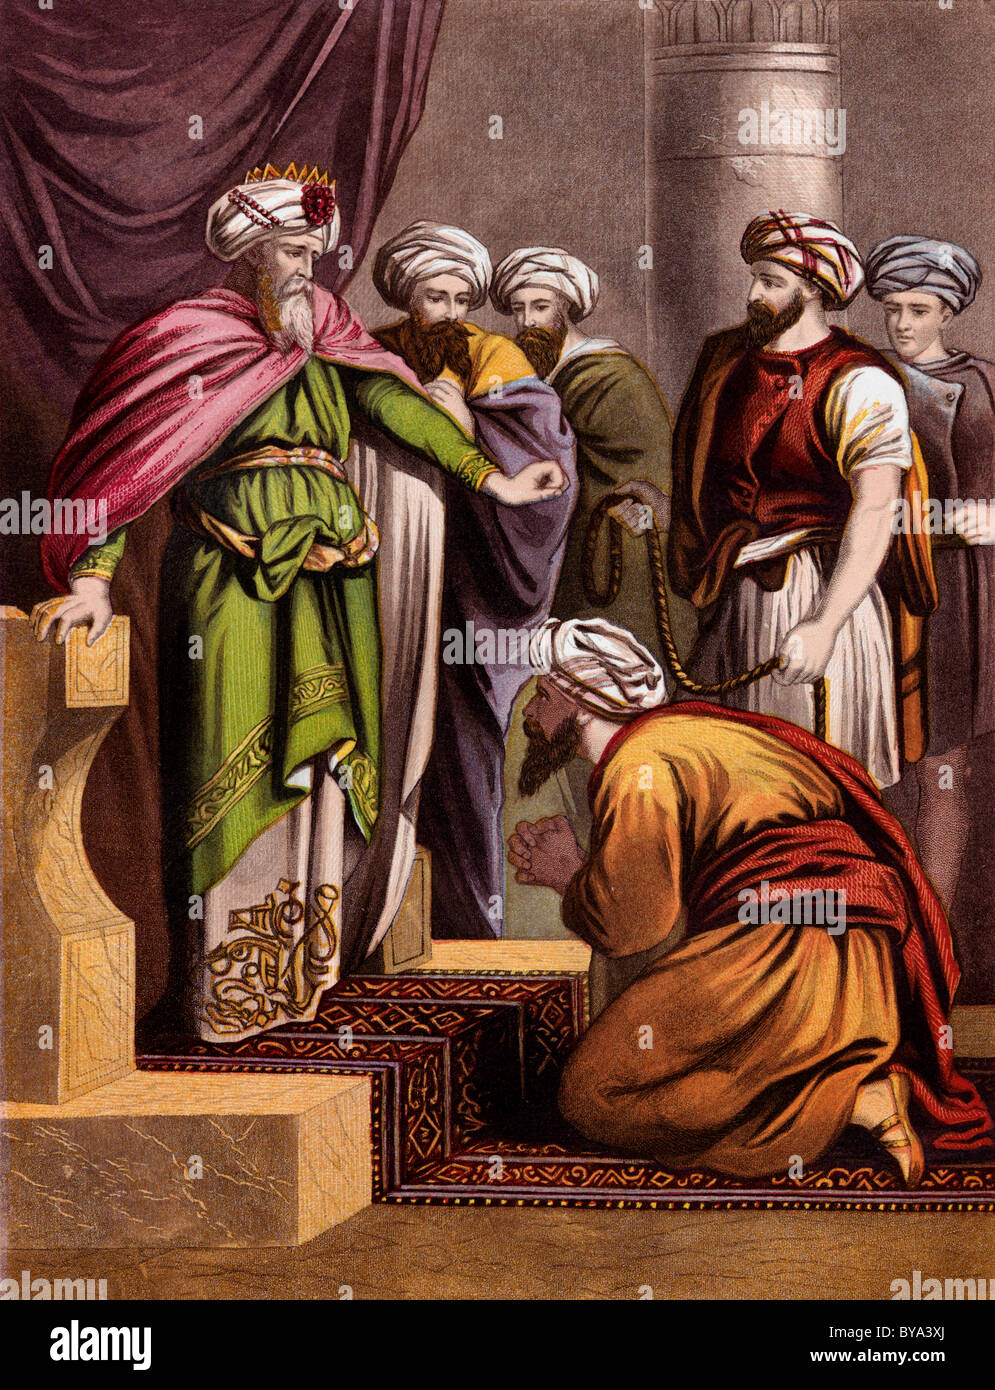 Bible Stories Illustration Of Parable Of The King And His Servants - Stock Image